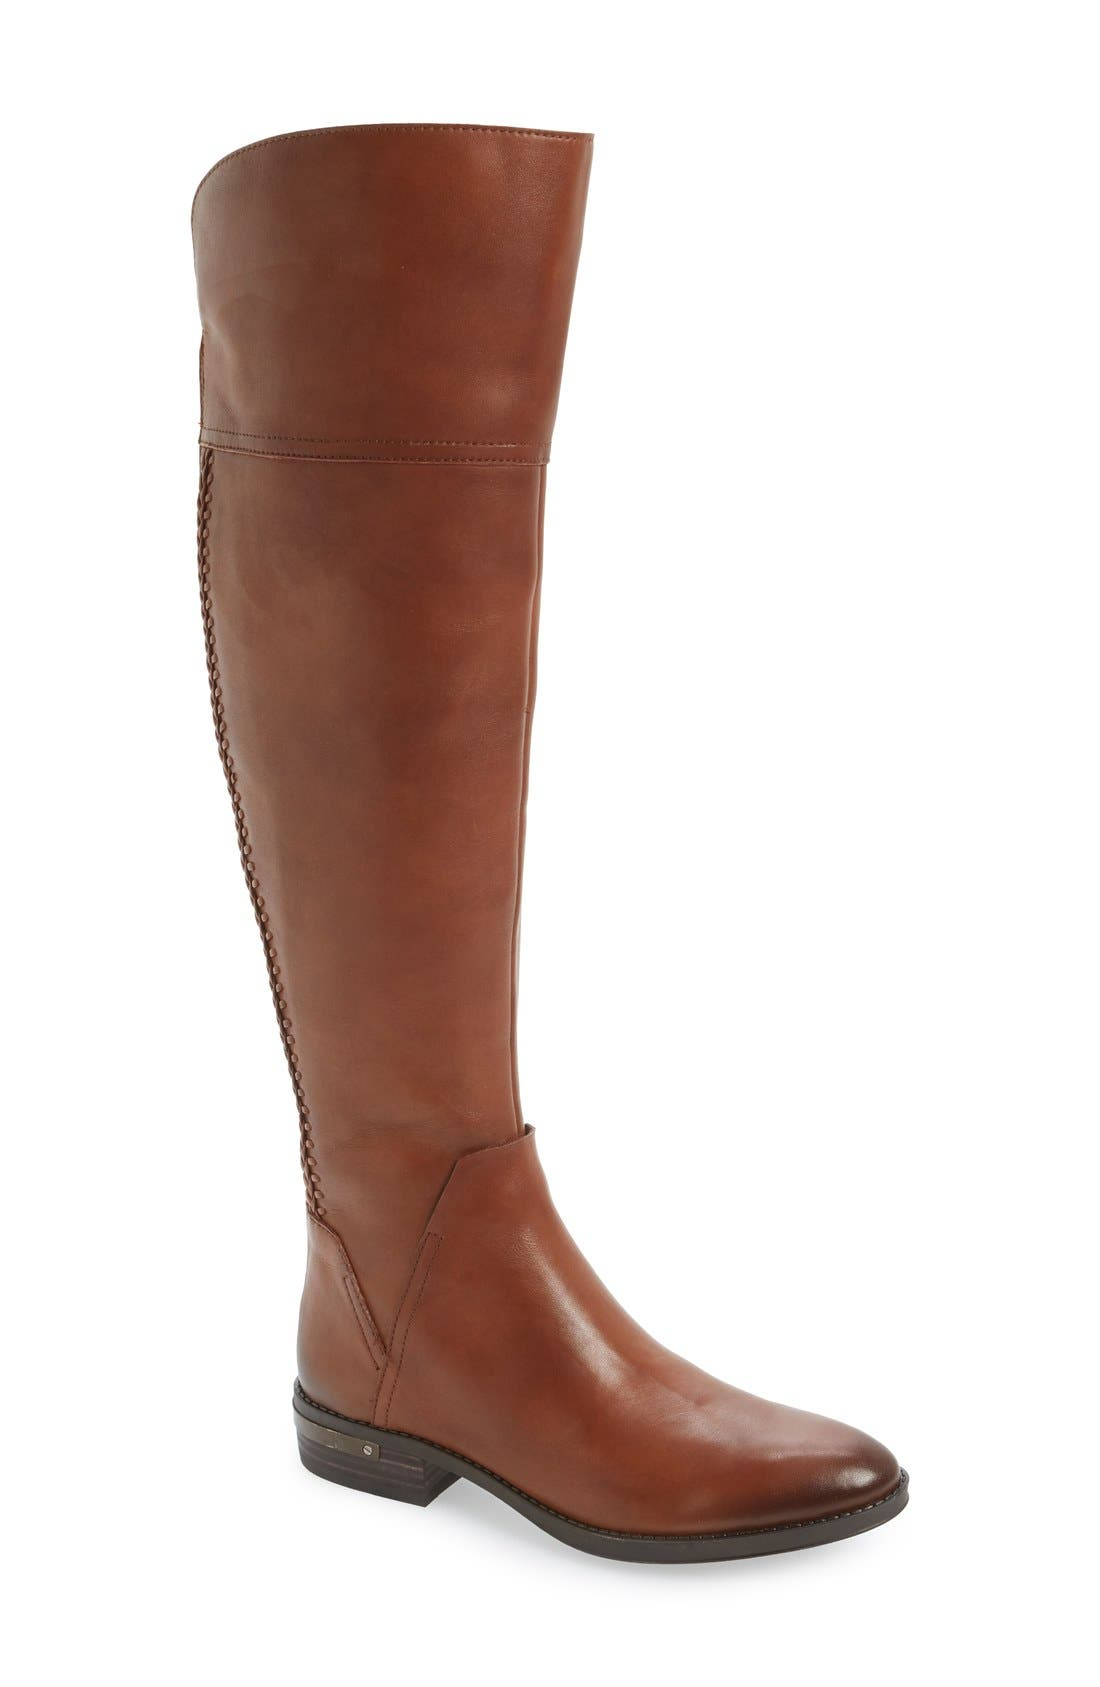 'Pedra' Over the Knee Boot,                             Main thumbnail 1, color,                             Gingerbread Leather